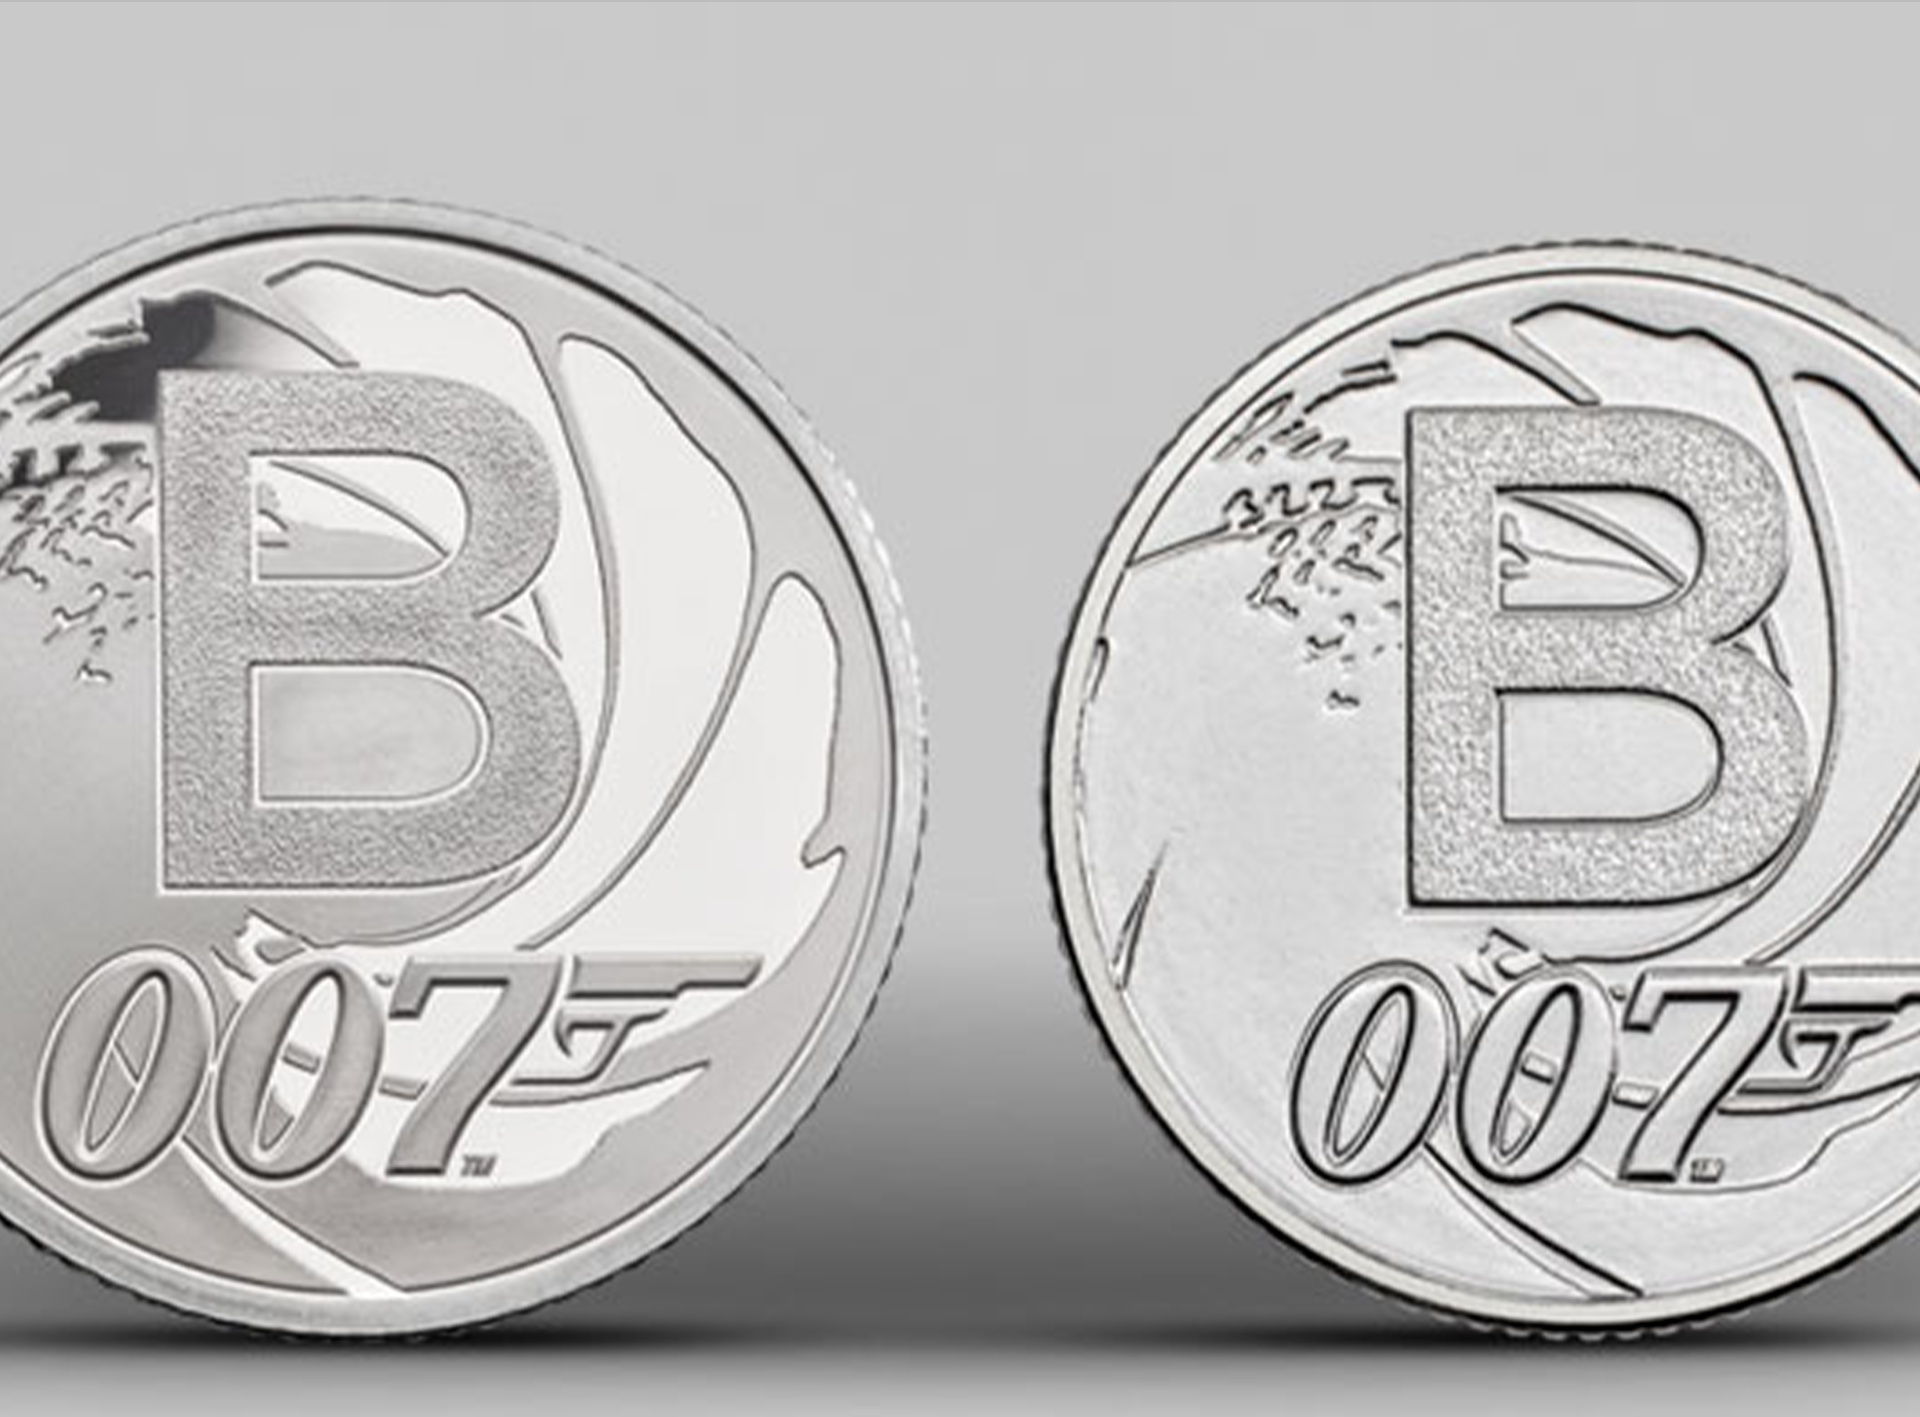 Special James Bond Collectors Coin Released